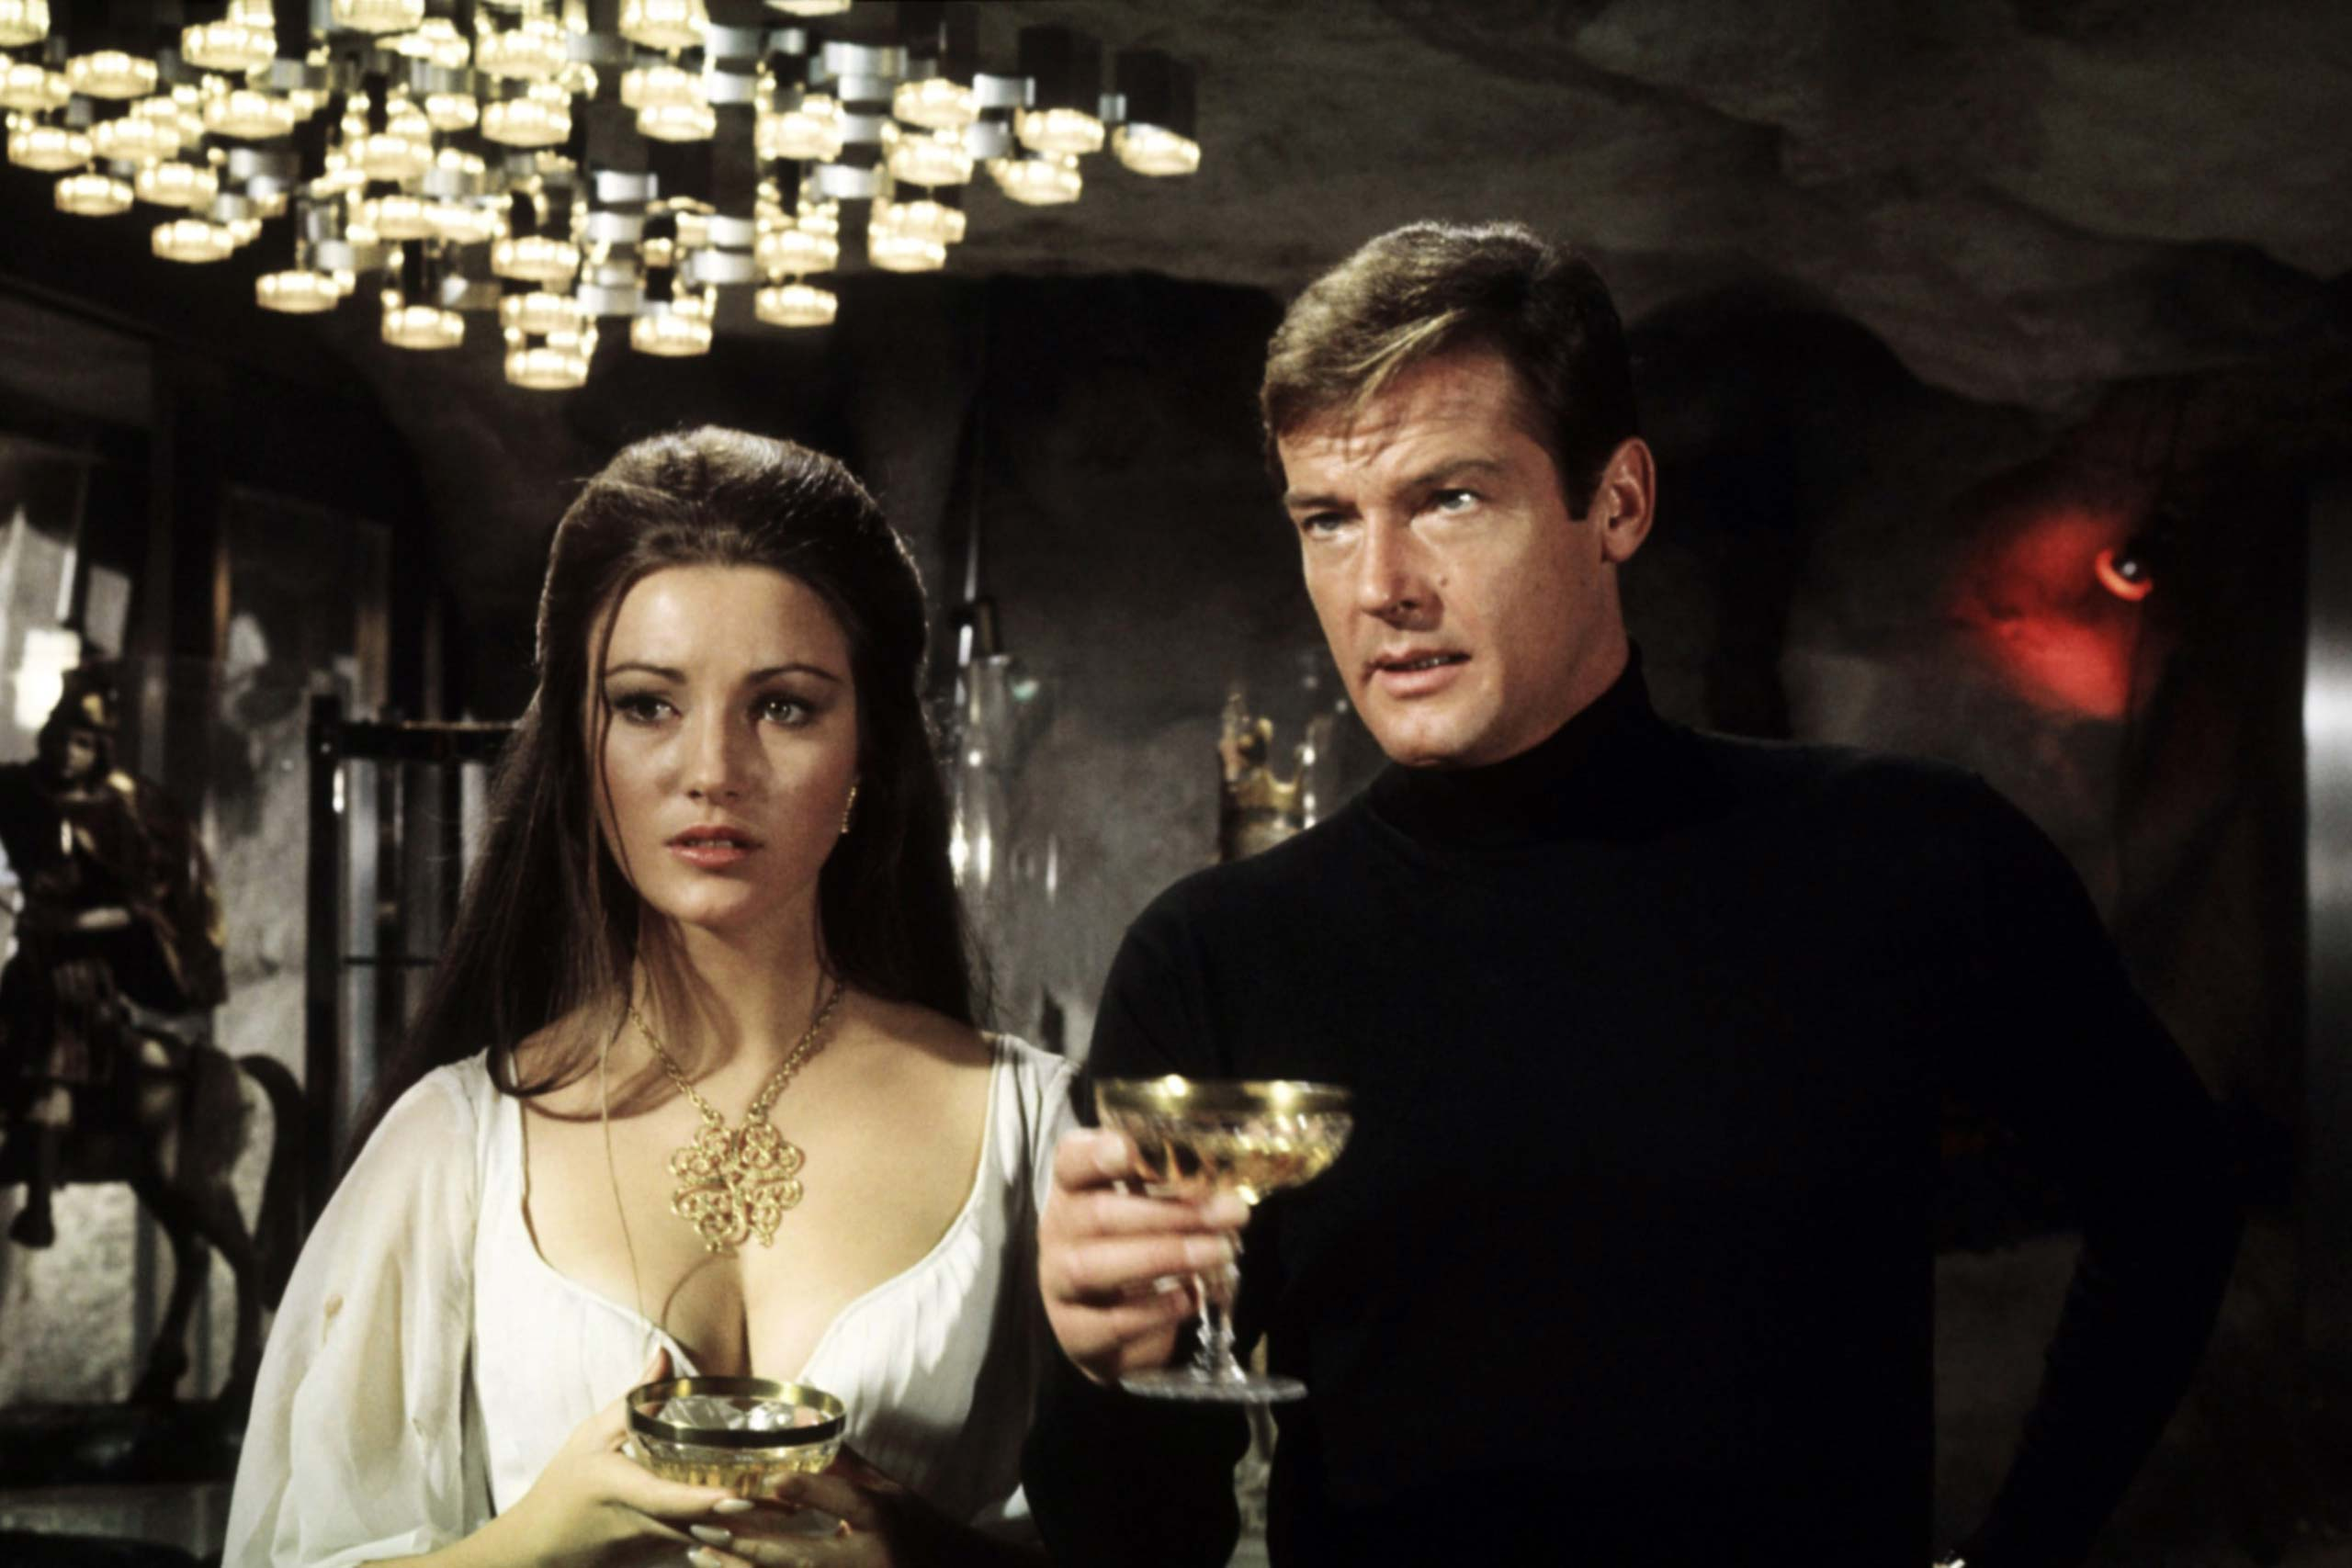 <strong><i>Live and Let Die</i> (1973) - Roger Moore</strong>